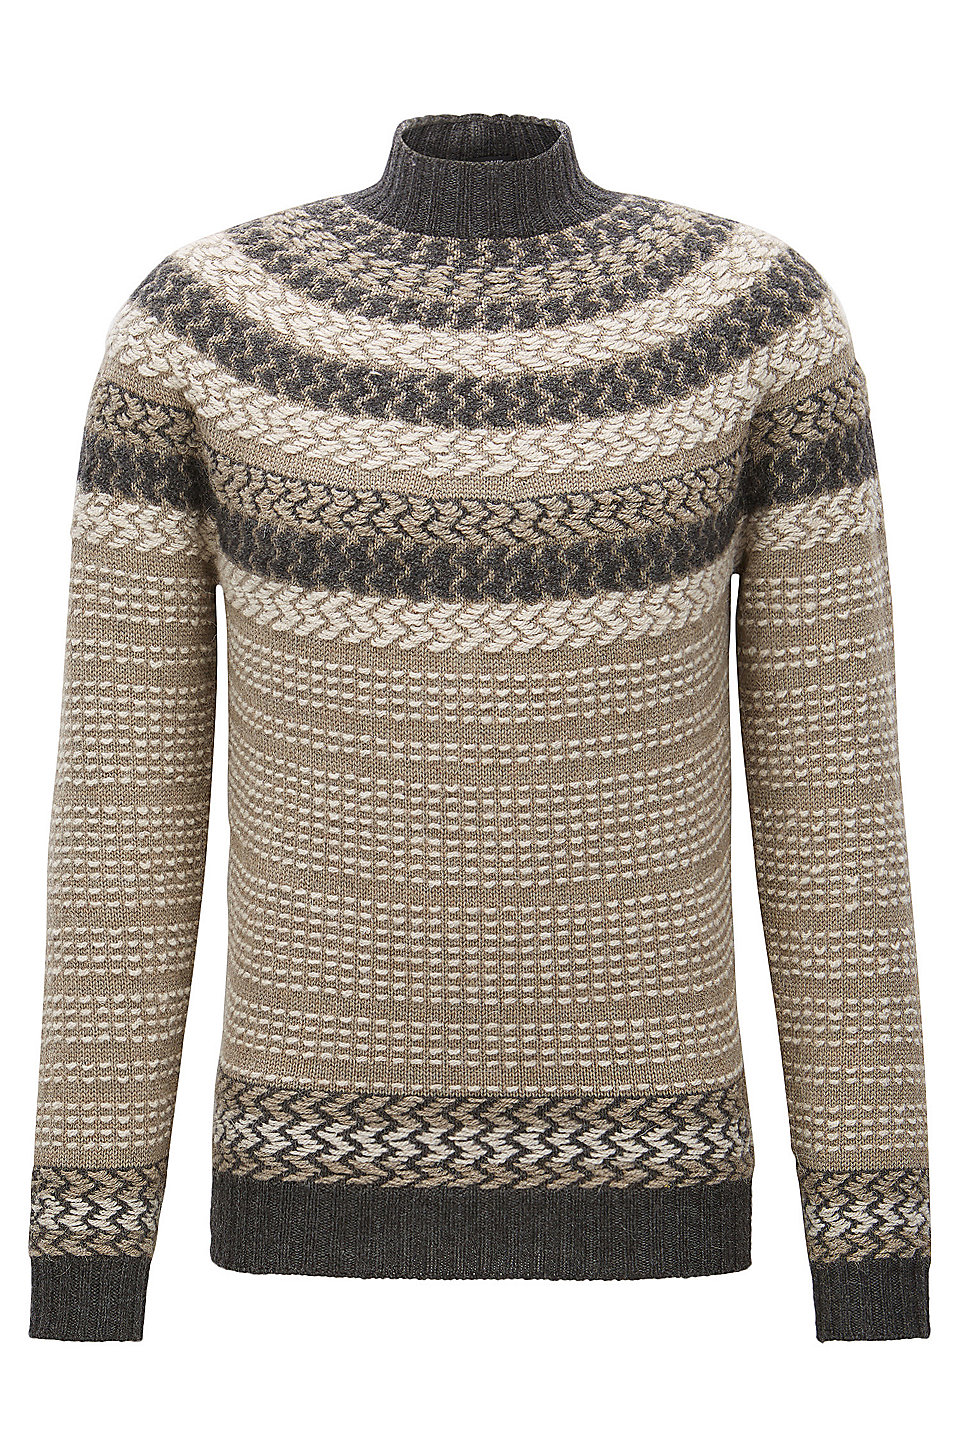 HUGO BOSS® Men's Sweaters & Sweatshirts on Sale